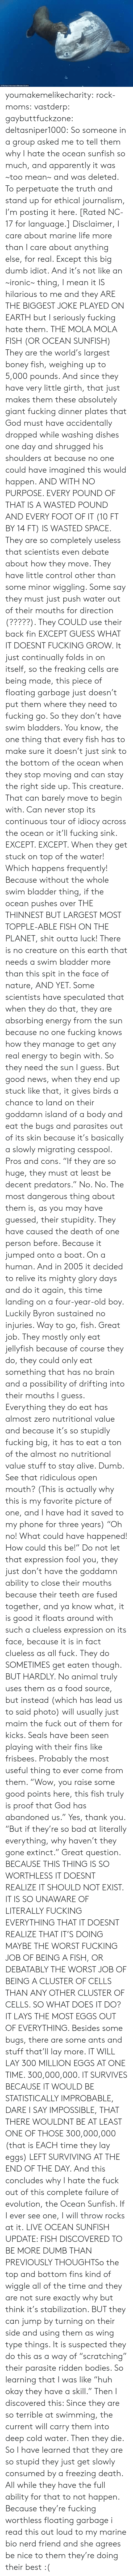 "Alive, Apparently, and Bad: ORihad Herrma M  S youmakemelikecharity:  rock-moms:  vastderp:  gaybuttfuckzone:  deltasniper1000:  So someone in a group asked me to tell them why I hate the ocean sunfish so much, and apparently it was ~too mean~ and was deleted. To perpetuate the truth and stand up for ethical journalism, I'm posting it here. [Rated NC-17 for language.]  Disclaimer, I care about marine life more than I care about anything else, for real. Except this big dumb idiot. And it's not like an ~ironic~ thing, I mean it IS hilarious to me and they ARE THE BIGGEST JOKE PLAYED ON EARTH but I seriously fucking hate them.  THE MOLA MOLA FISH (OR OCEAN SUNFISH)  They are the world's largest boney fish, weighing up to 5,000 pounds. And since they have very little girth, that just makes them these absolutely giant fucking dinner plates that God must have accidentally dropped while washing dishes one day and shrugged his shoulders at because no one could have imagined this would happen. AND WITH NO PURPOSE. EVERY POUND OF THAT IS A WASTED POUND AND EVERY FOOT OF IT (10 FT BY 14 FT) IS WASTED SPACE.  They are so completely useless that scientists even debate about how they move. They have little control other than some minor wiggling. Some say they must just push water out of their mouths for direction (?????). They COULD use their back fin EXCEPT GUESS WHAT IT DOESNT FUCKING GROW. It just continually folds in on itself, so the freaking cells are being made, this piece of floating garbage just doesn't put them where they need to fucking go.   So they don't have swim bladders. You know, the one thing that every fish has to make sure it doesn't just sink to the bottom of the ocean when they stop moving and can stay the right side up. This creature. That can barely move to begin with. Can never stop its continuous tour of idiocy across the ocean or it'll fucking sink. EXCEPT. EXCEPT. When they get stuck on top of the water! Which happens frequently! Because without the whole swim bladder thing, if the ocean pushes over THE THINNEST BUT LARGEST MOST TOPPLE-ABLE FISH ON THE PLANET, shit outta luck! There is no creature on this earth that needs a swim bladder more than this spit in the face of nature, AND YET. Some scientists have speculated that when they do that, they are absorbing energy from the sun because no one fucking knows how they manage to get any real energy to begin with. So they need the sun I guess. But good news, when they end up stuck like that, it gives birds a chance to land on their goddamn island of a body and eat the bugs and parasites out of its skin because it's basically a slowly migrating cesspool. Pros and cons.   ""If they are so huge, they must at least be decent predators."" No. No. The most dangerous thing about them is, as you may have guessed, their stupidity. They have caused the death of one person before. Because it jumped onto a boat. On a human. And in 2005 it decided to relive its mighty glory days and do it again, this time landing on a four-year-old boy. Luckily Byron sustained no injuries. Way to go, fish. Great job.  They mostly only eat jellyfish because of course they do, they could only eat something that has no brain and a possibility of drifting into their mouths I guess. Everything they do eat has almost zero nutritional value and because it's so stupidly fucking big, it has to eat a ton of the almost no nutritional value stuff to stay alive. Dumb. See that ridiculous open mouth? (This is actually why this is my favorite picture of one, and I have had it saved to my phone for three years) ""Oh no! What could have happened! How could this be!"" Do not let that expression fool you, they just don't have the goddamn ability to close their mouths because their teeth are fused together, and ya know what, it is good it floats around with such a clueless expression on its face, because it is in fact clueless as all fuck.  They do SOMETIMES get eaten though. BUT HARDLY. No animal truly uses them as a food source, but instead (which has lead us to said photo) will usually just maim the fuck out of them for kicks. Seals have been seen playing with their fins like frisbees. Probably the most useful thing to ever come from them.   ""Wow, you raise some good points here, this fish truly is proof that God has abandoned us."" Yes, thank you. ""But if they're so bad at literally everything, why haven't they gone extinct."" Great question.   BECAUSE THIS THING IS SO WORTHLESS IT DOESNT REALIZE IT SHOULD NOT EXIST. IT IS SO UNAWARE OF LITERALLY FUCKING EVERYTHING THAT IT DOESNT REALIZE THAT IT'S DOING MAYBE THE WORST FUCKING JOB OF BEING A FISH, OR DEBATABLY THE WORST JOB OF BEING A CLUSTER OF CELLS THAN ANY OTHER CLUSTER OF CELLS. SO WHAT DOES IT DO? IT LAYS THE MOST EGGS OUT OF EVERYTHING. Besides some bugs, there are some ants and stuff that'll lay more. IT WILL LAY 300 MILLION EGGS AT ONE TIME. 300,000,000. IT SURVIVES BECAUSE IT WOULD BE STATISTICALLY IMPROBABLE, DARE I SAY IMPOSSIBLE, THAT THERE WOULDNT BE AT LEAST ONE OF THOSE 300,000,000 (that is EACH time they lay eggs) LEFT SURVIVING AT THE END OF THE DAY.   And this concludes why I hate the fuck out of this complete failure of evolution, the Ocean Sunfish. If I ever see one, I will throw rocks at it.   LIVE OCEAN SUNFISH UPDATE: FISH DISCOVERED TO BE MORE DUMB THAN PREVIOUSLY THOUGHTSo  the top and bottom fins kind of wiggle all of the time and they are not  sure exactly why but think it's stabilization. BUT they can jump by  turning on their side and using them as  wing type things. It is suspected they do this as a way of ""scratching""  their parasite ridden bodies. So learning that I was like ""huh okay they  have a skill."" Then I discovered this: Since they  are so terrible at swimming, the current will carry them into deep cold  water. Then they die. So I have learned that they are so stupid they  just get slowly consumed by a freezing death. All while they have the  full ability for that to not happen. Because they're fucking worthless  floating garbage    i read this out loud to my marine bio nerd friend and she agrees   be nice to them they're doing their best :("